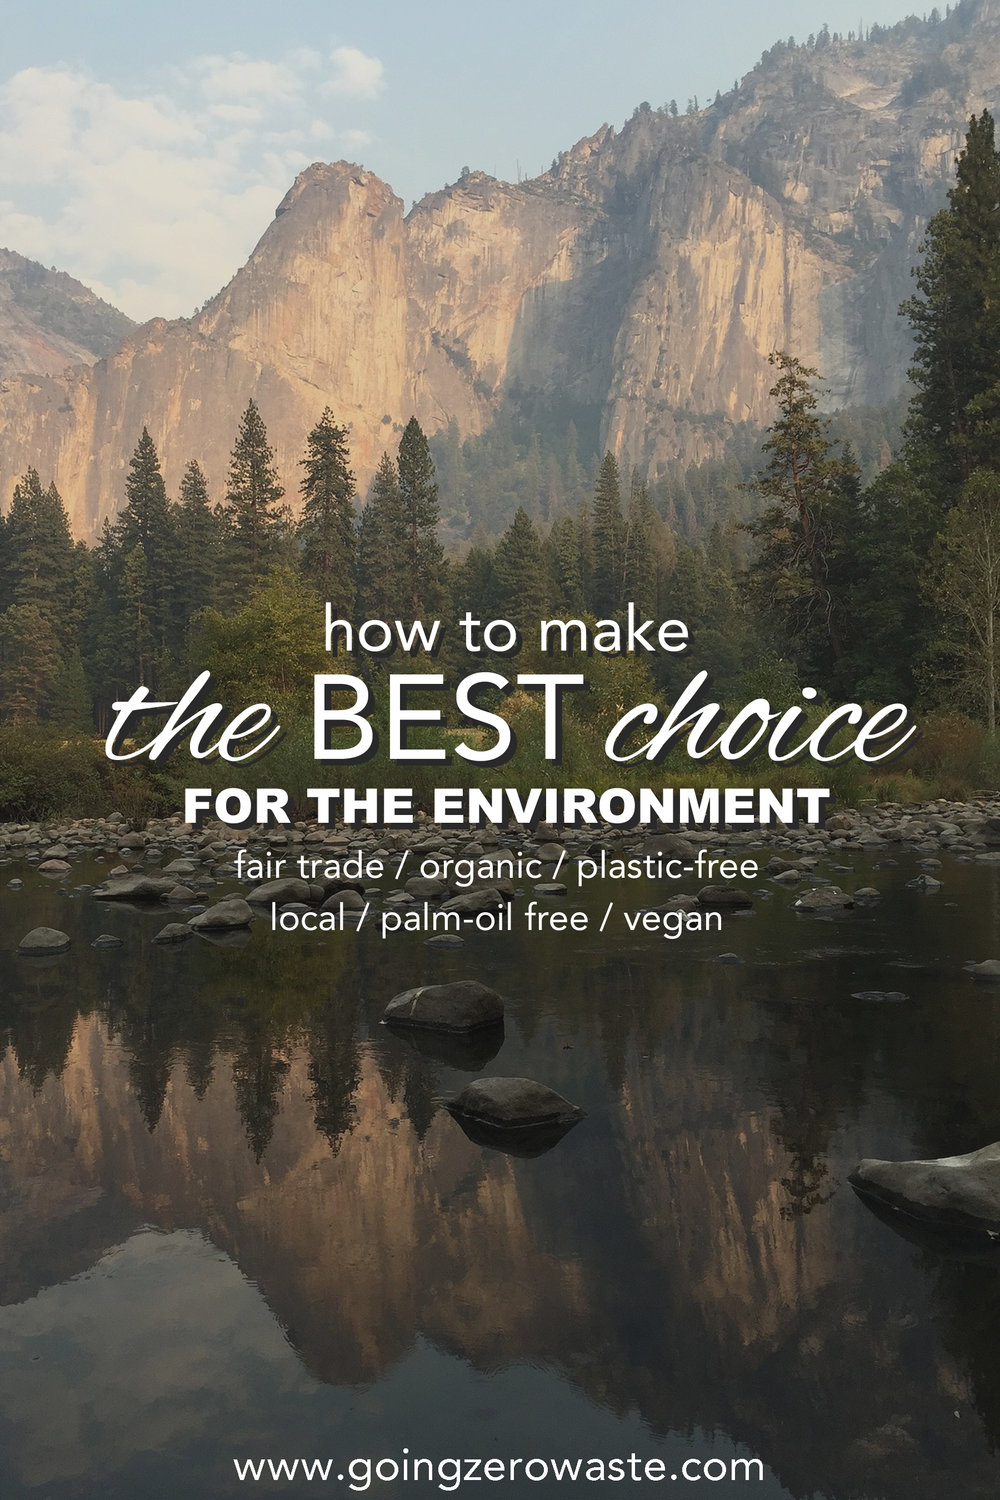 How to make the BEST choice for the environment from www.goingzerowaste.com